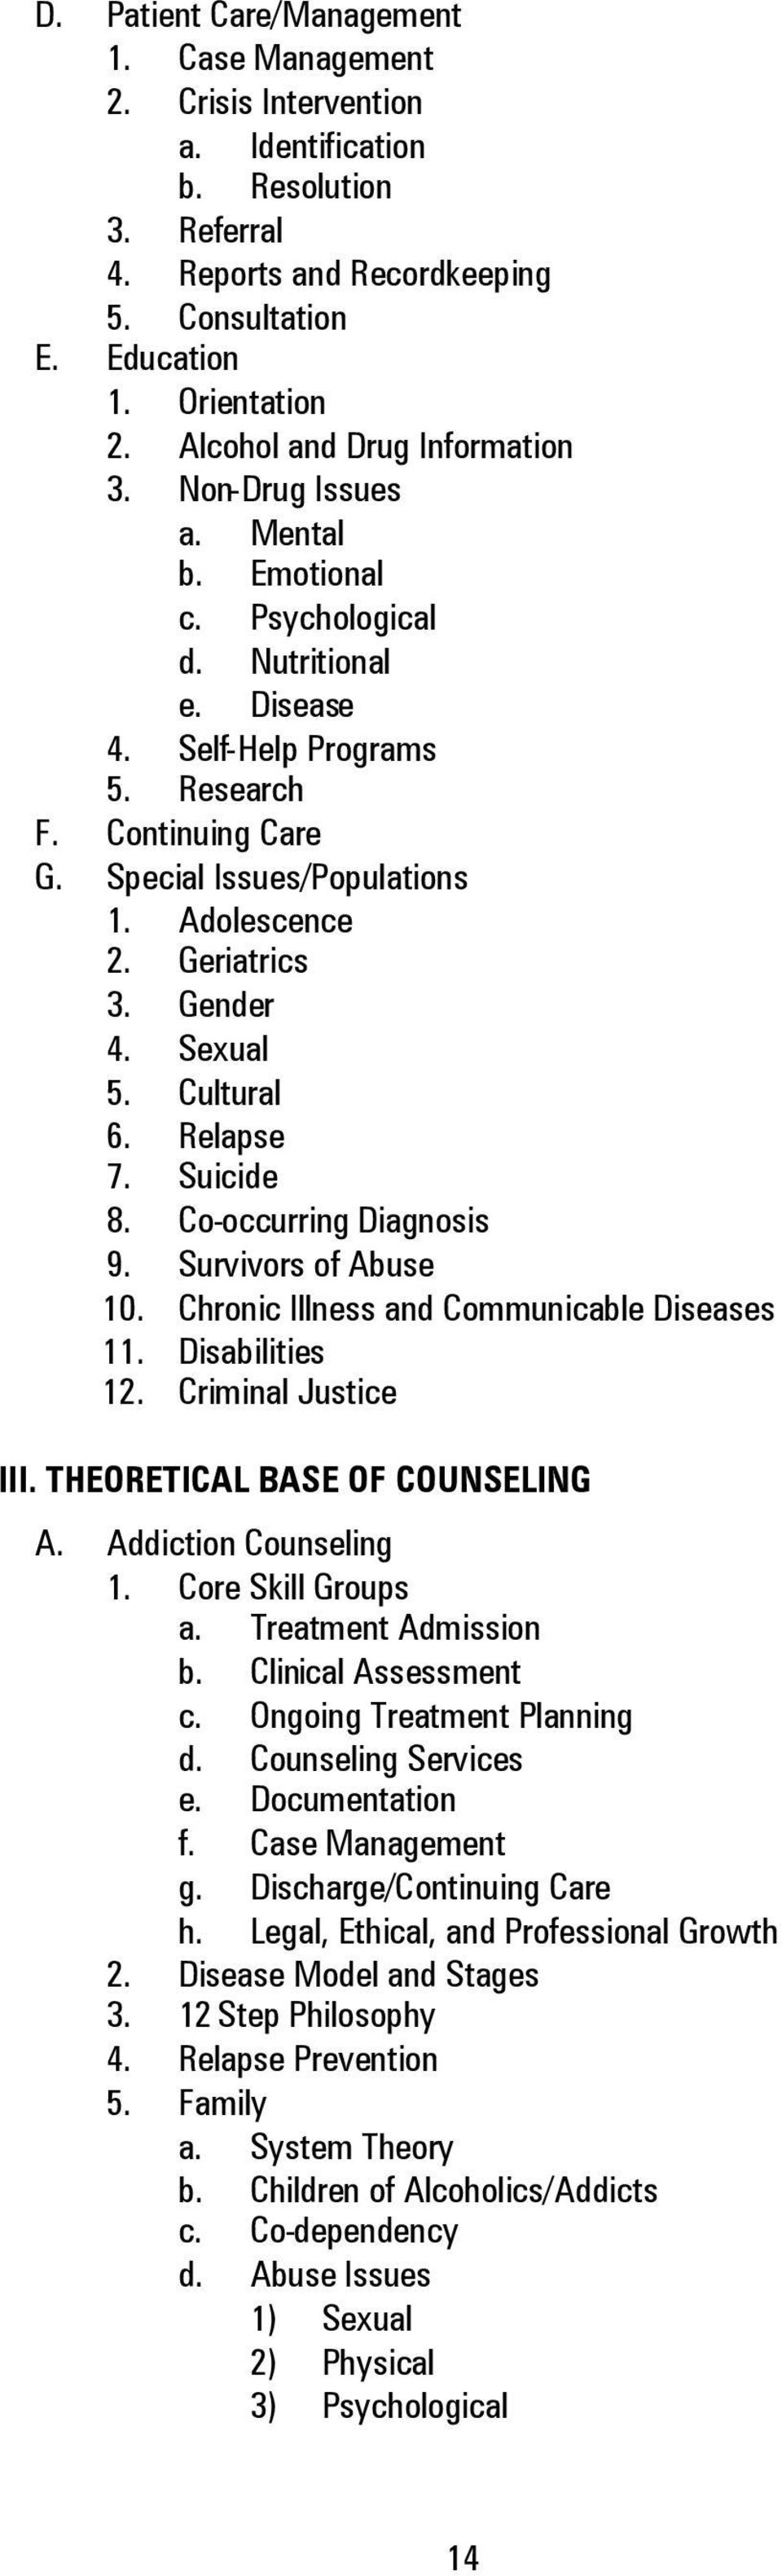 Adolescence 2. Geriatrics 3. Gender 4. Sexual 5. Cultural 6. Relapse 7. Suicide 8. Co-occurring Diagnosis 9. Survivors of Abuse 10. Chronic Illness and Communicable Diseases 11. Disabilities 12.